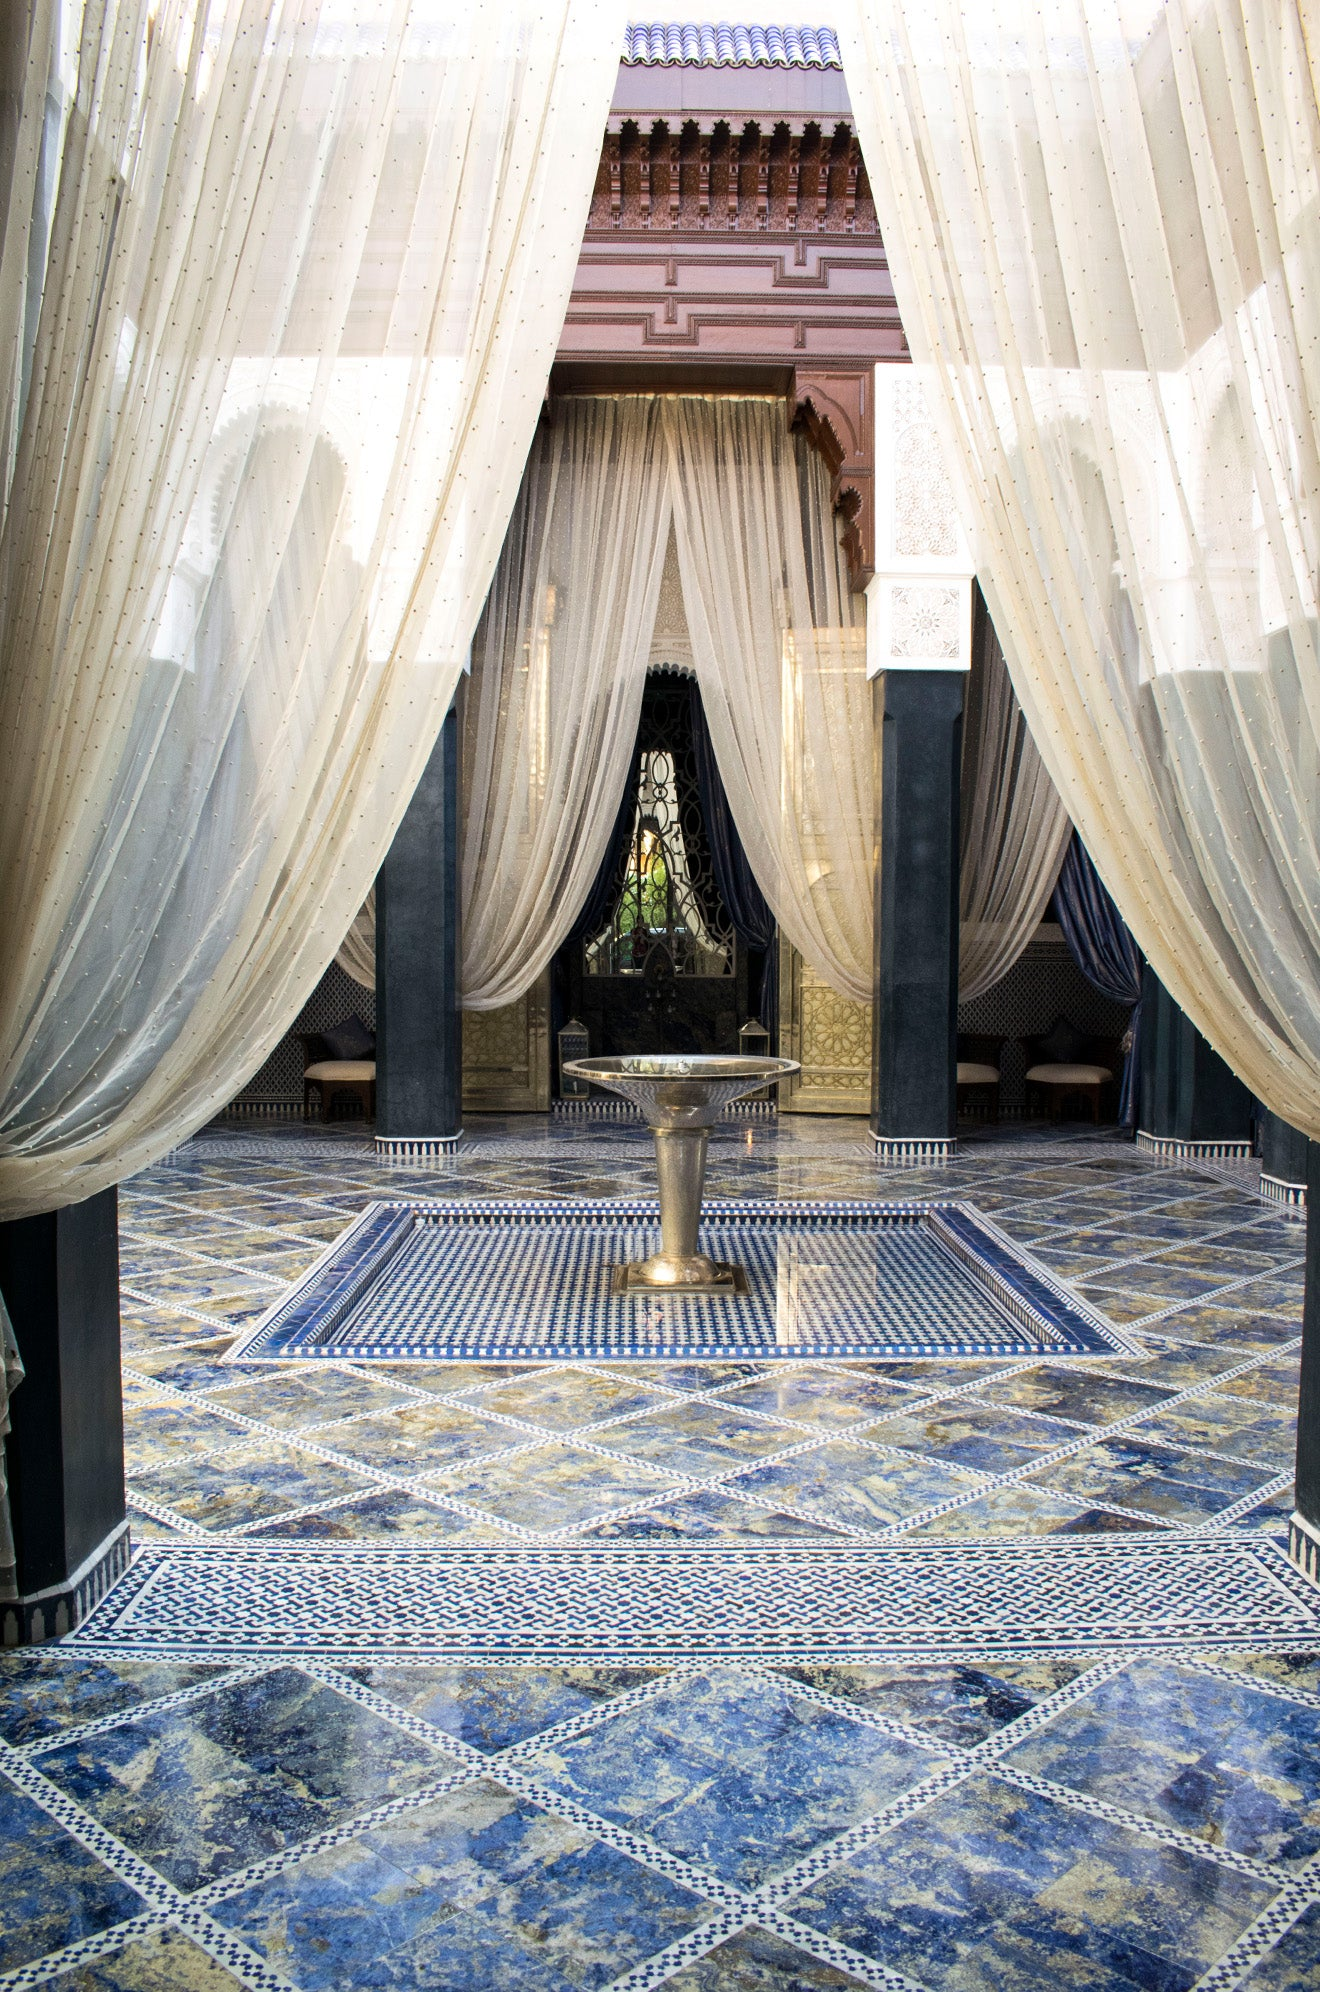 Moroccan blue courtyard tiles with central stainless steel fountain